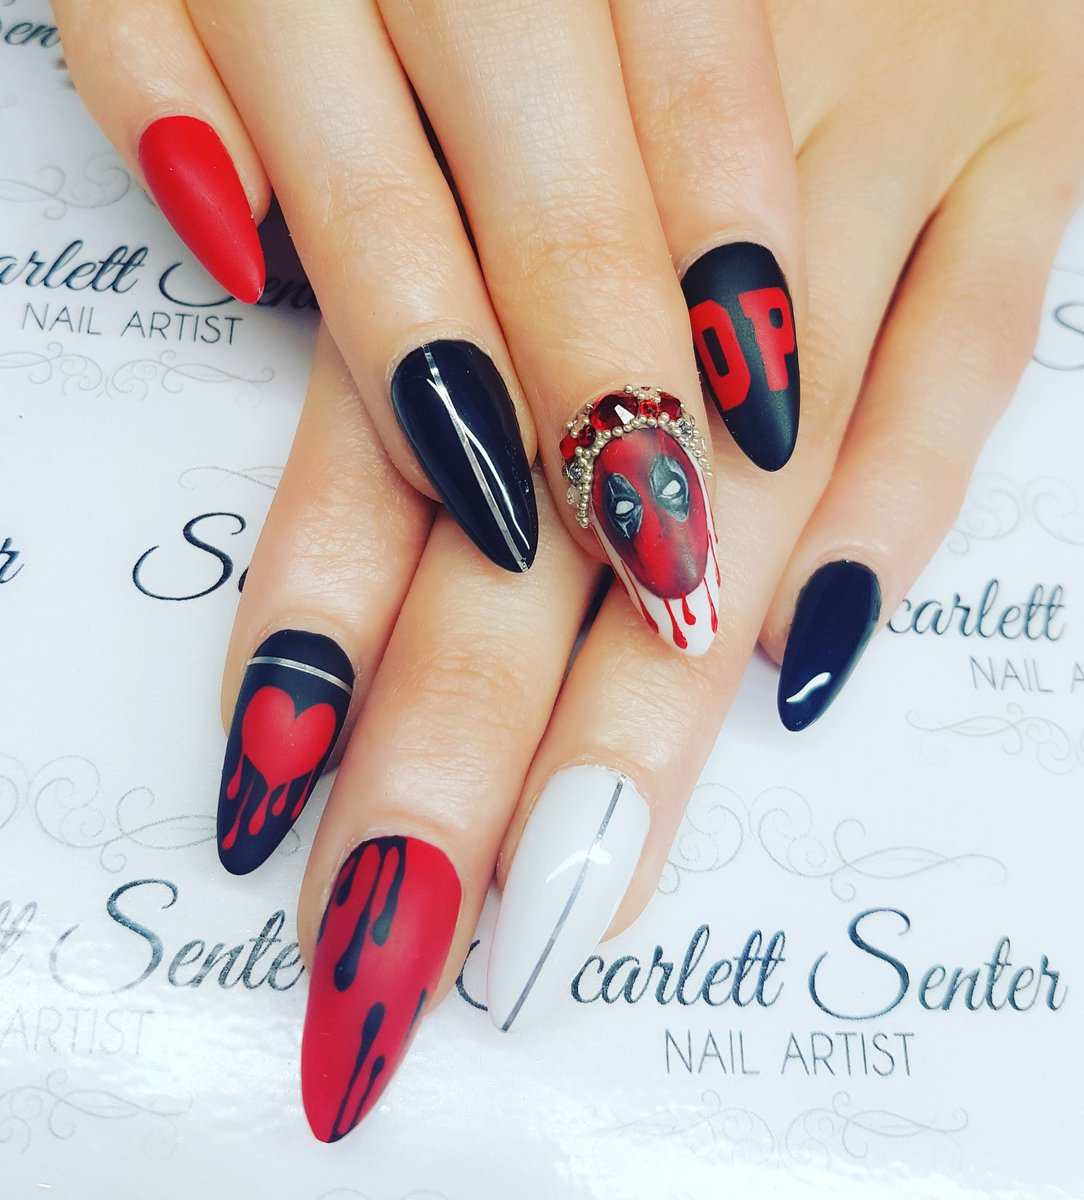 0 replies 1 retweet 8 likes - Scarlett Nail Artist (@scarlettwarren3) Twitter